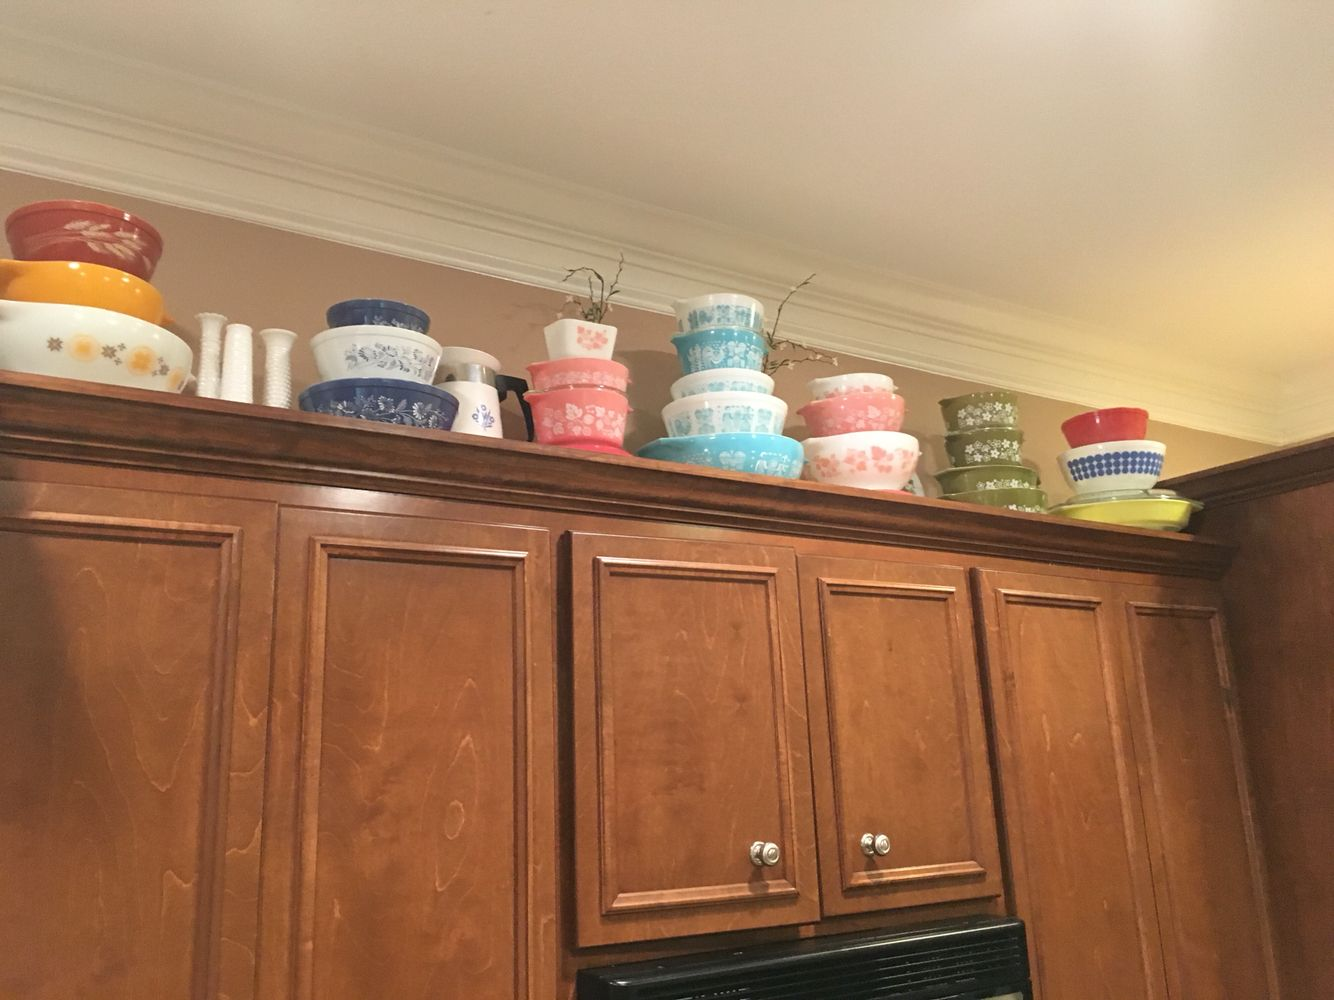 My #pyrex collection I started this year!